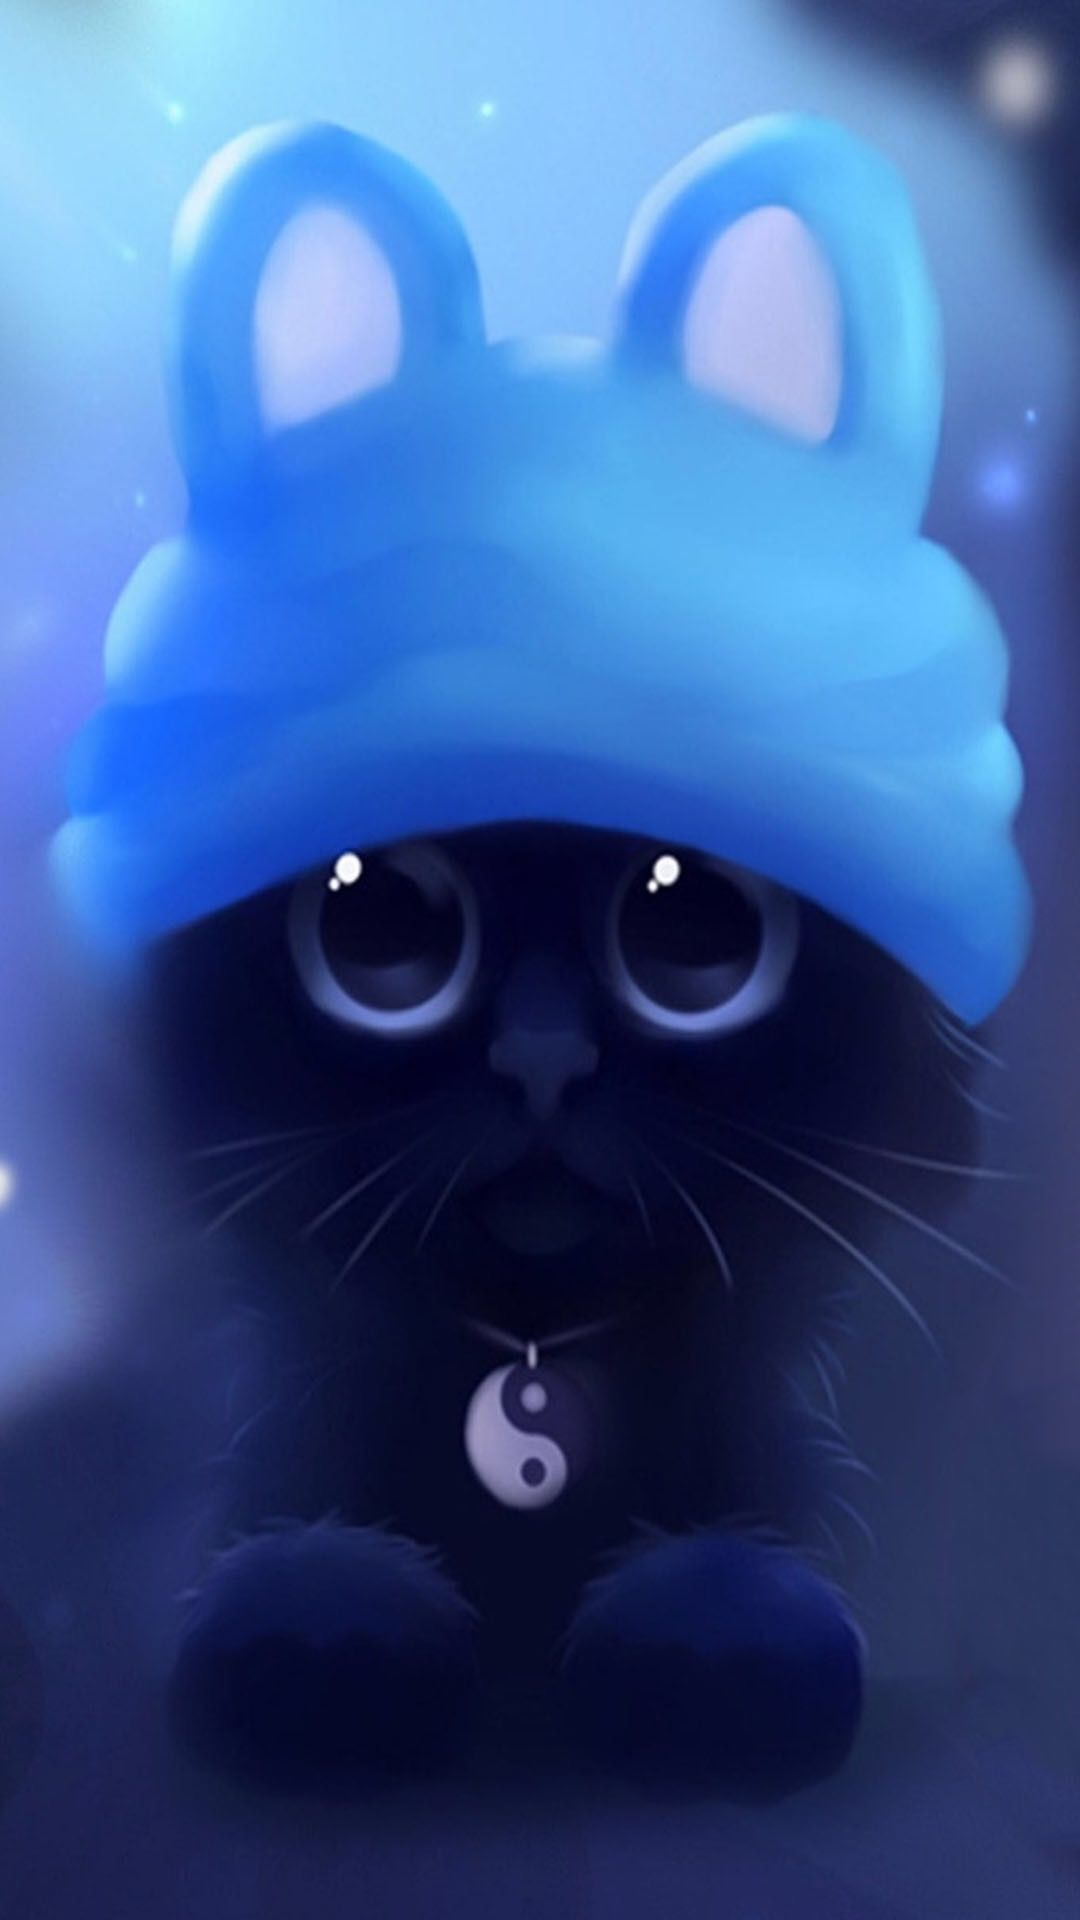 Pin By Jesica Soley On Animaux Cute Animal Drawings Cat Art Cute Animals